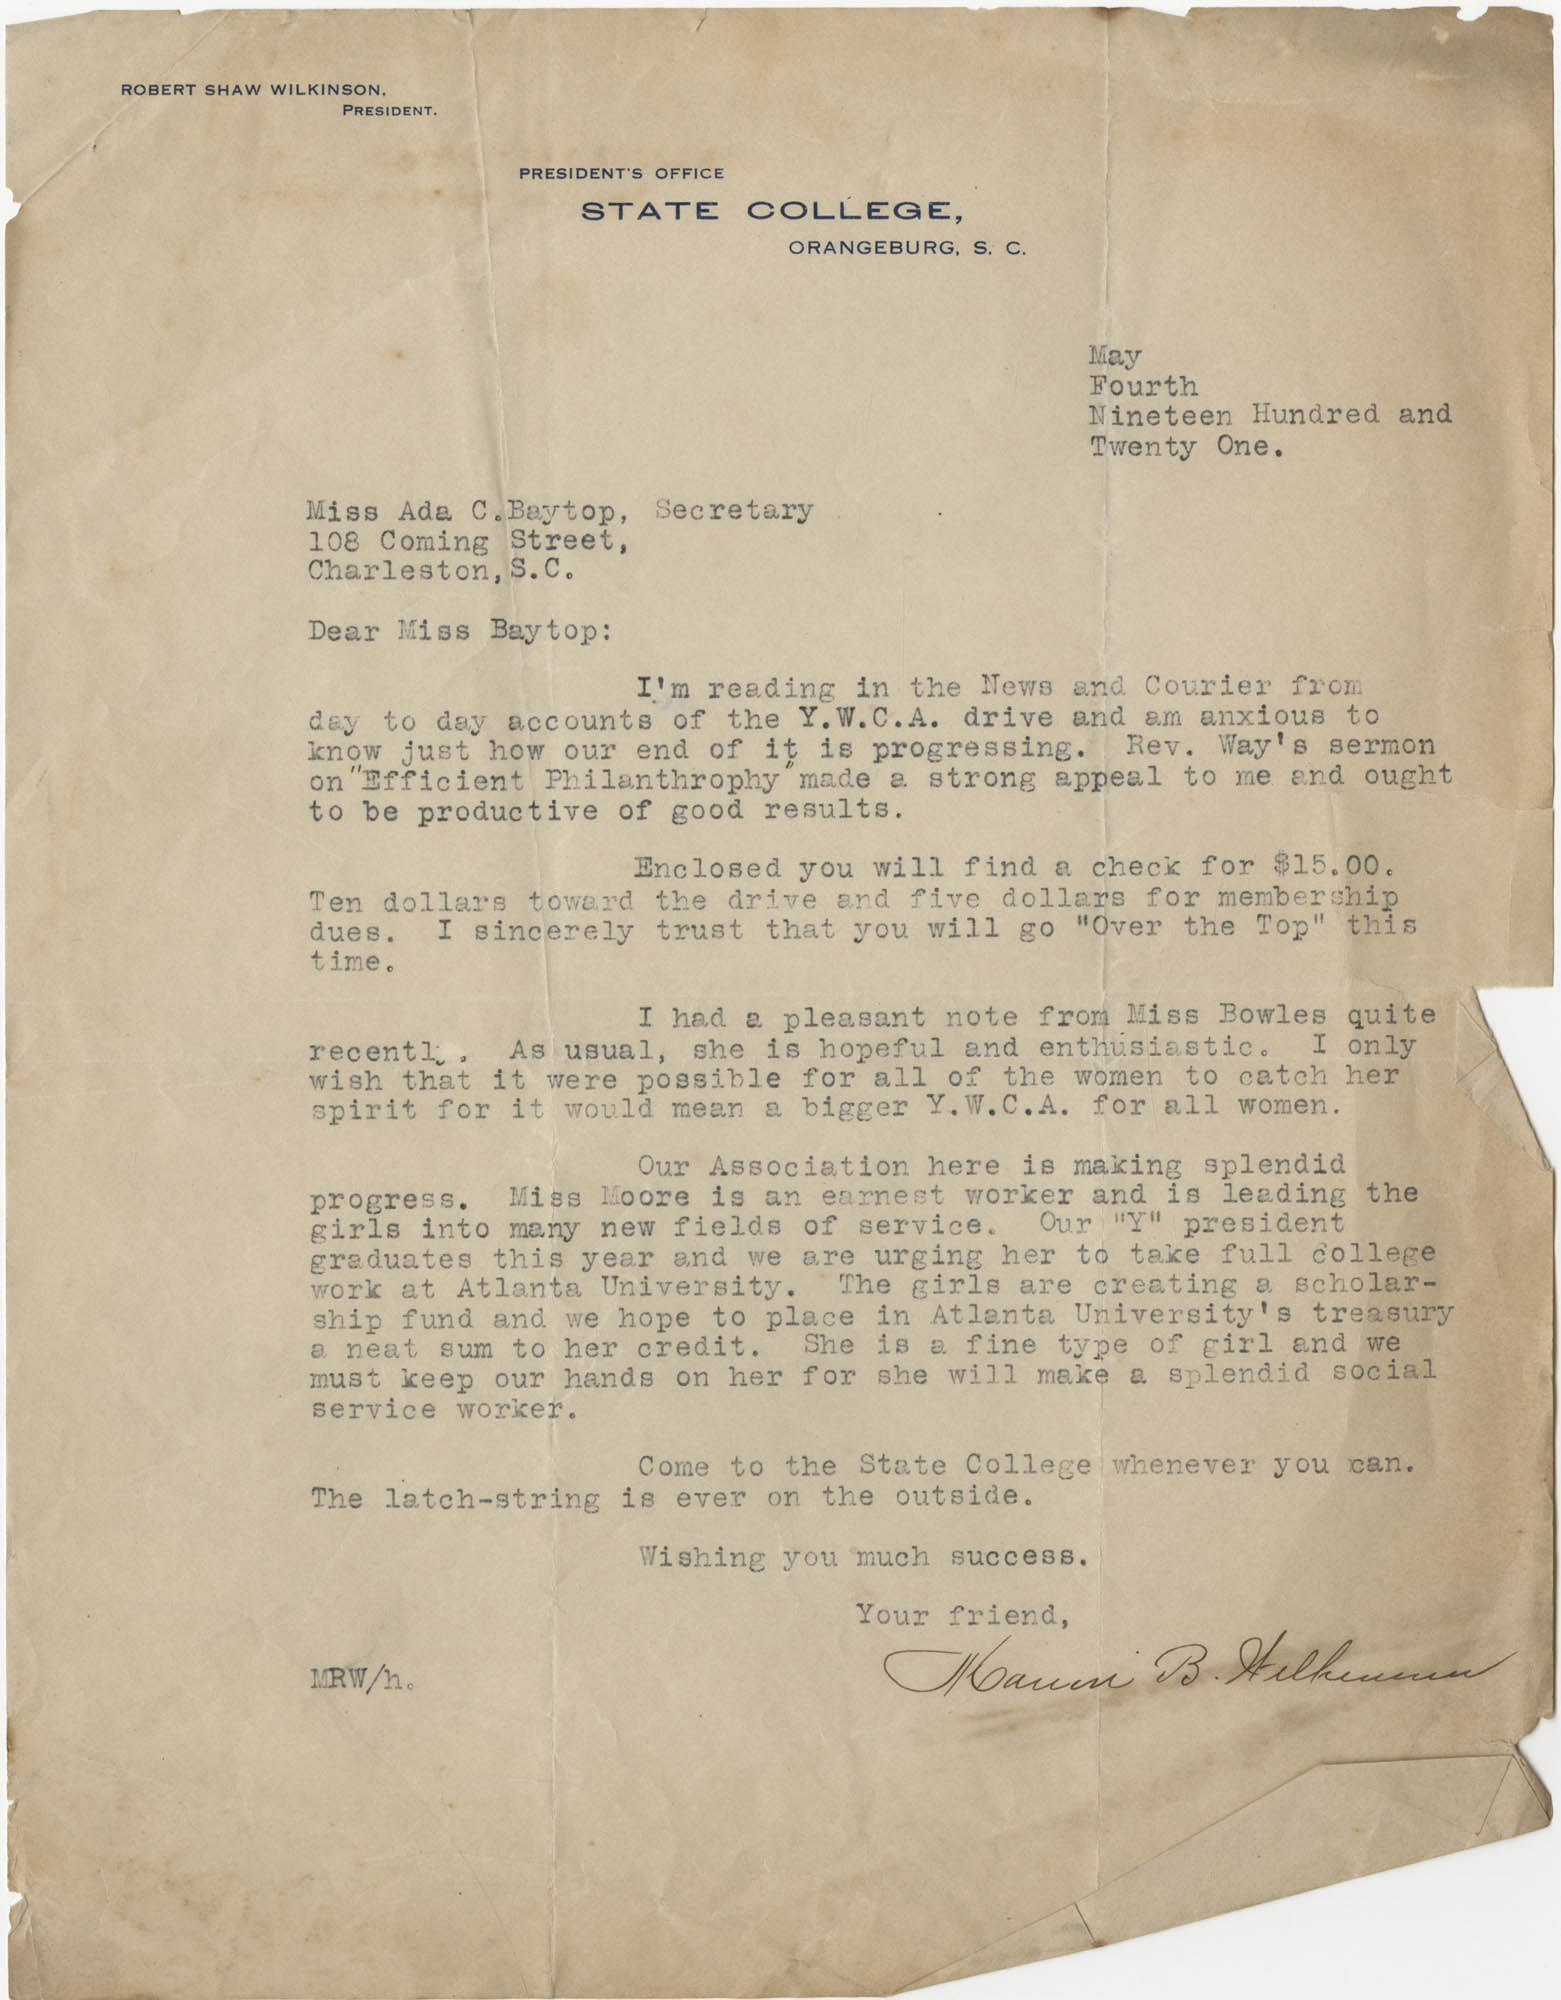 Letter from Robert Shaw Wilkinson to Ada C. Baytop, May 4, 1921